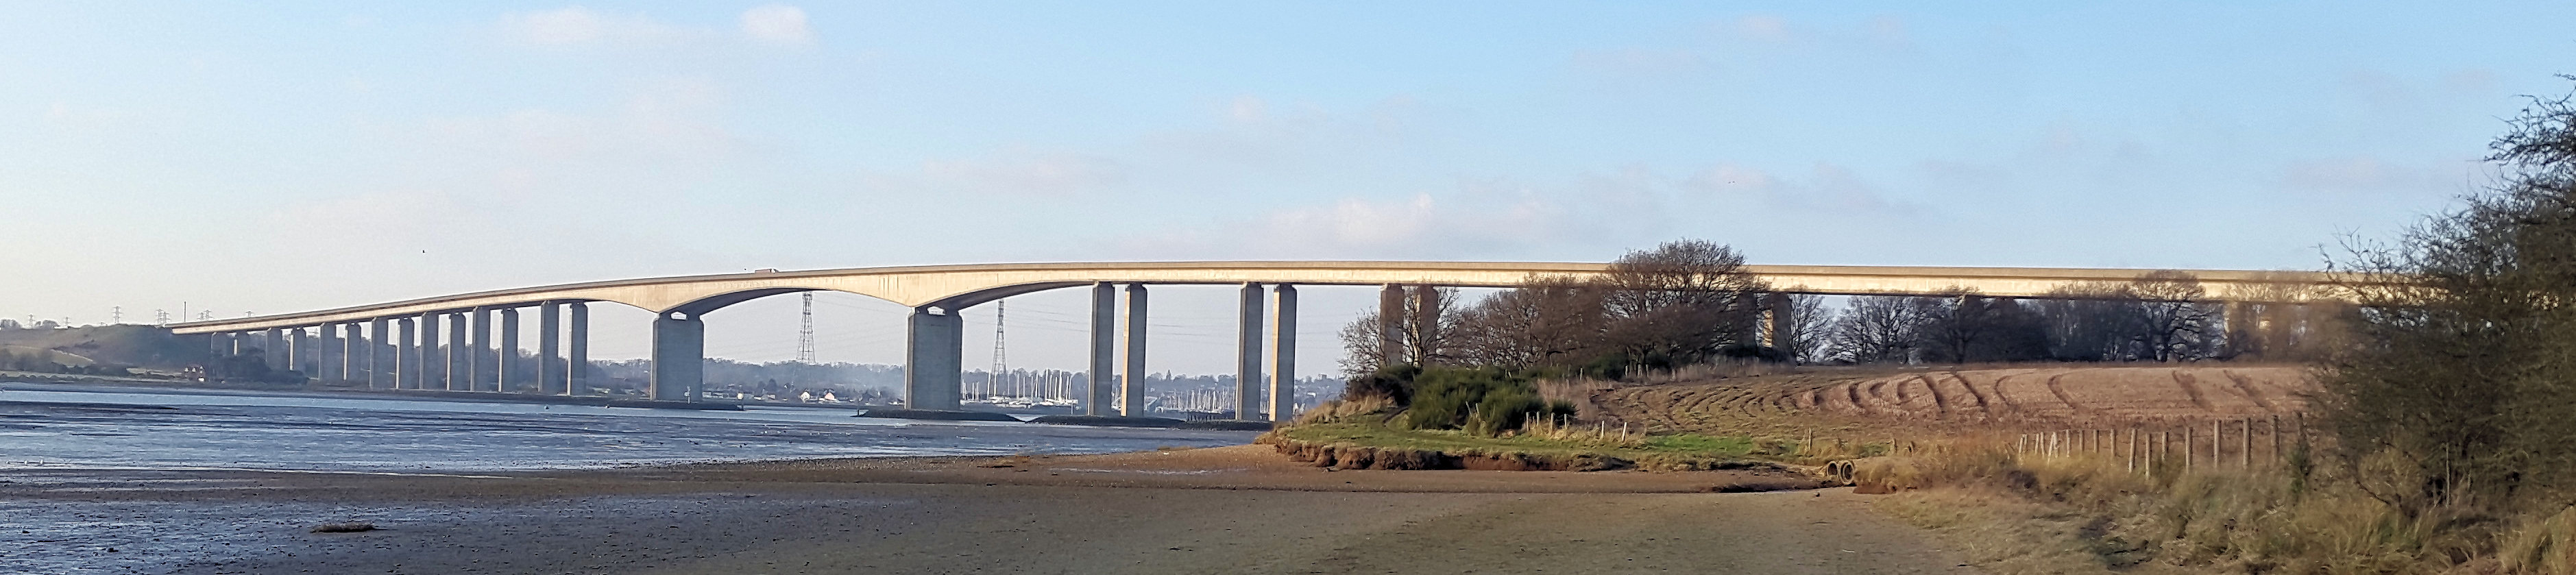 Picture of Orwell Bridge